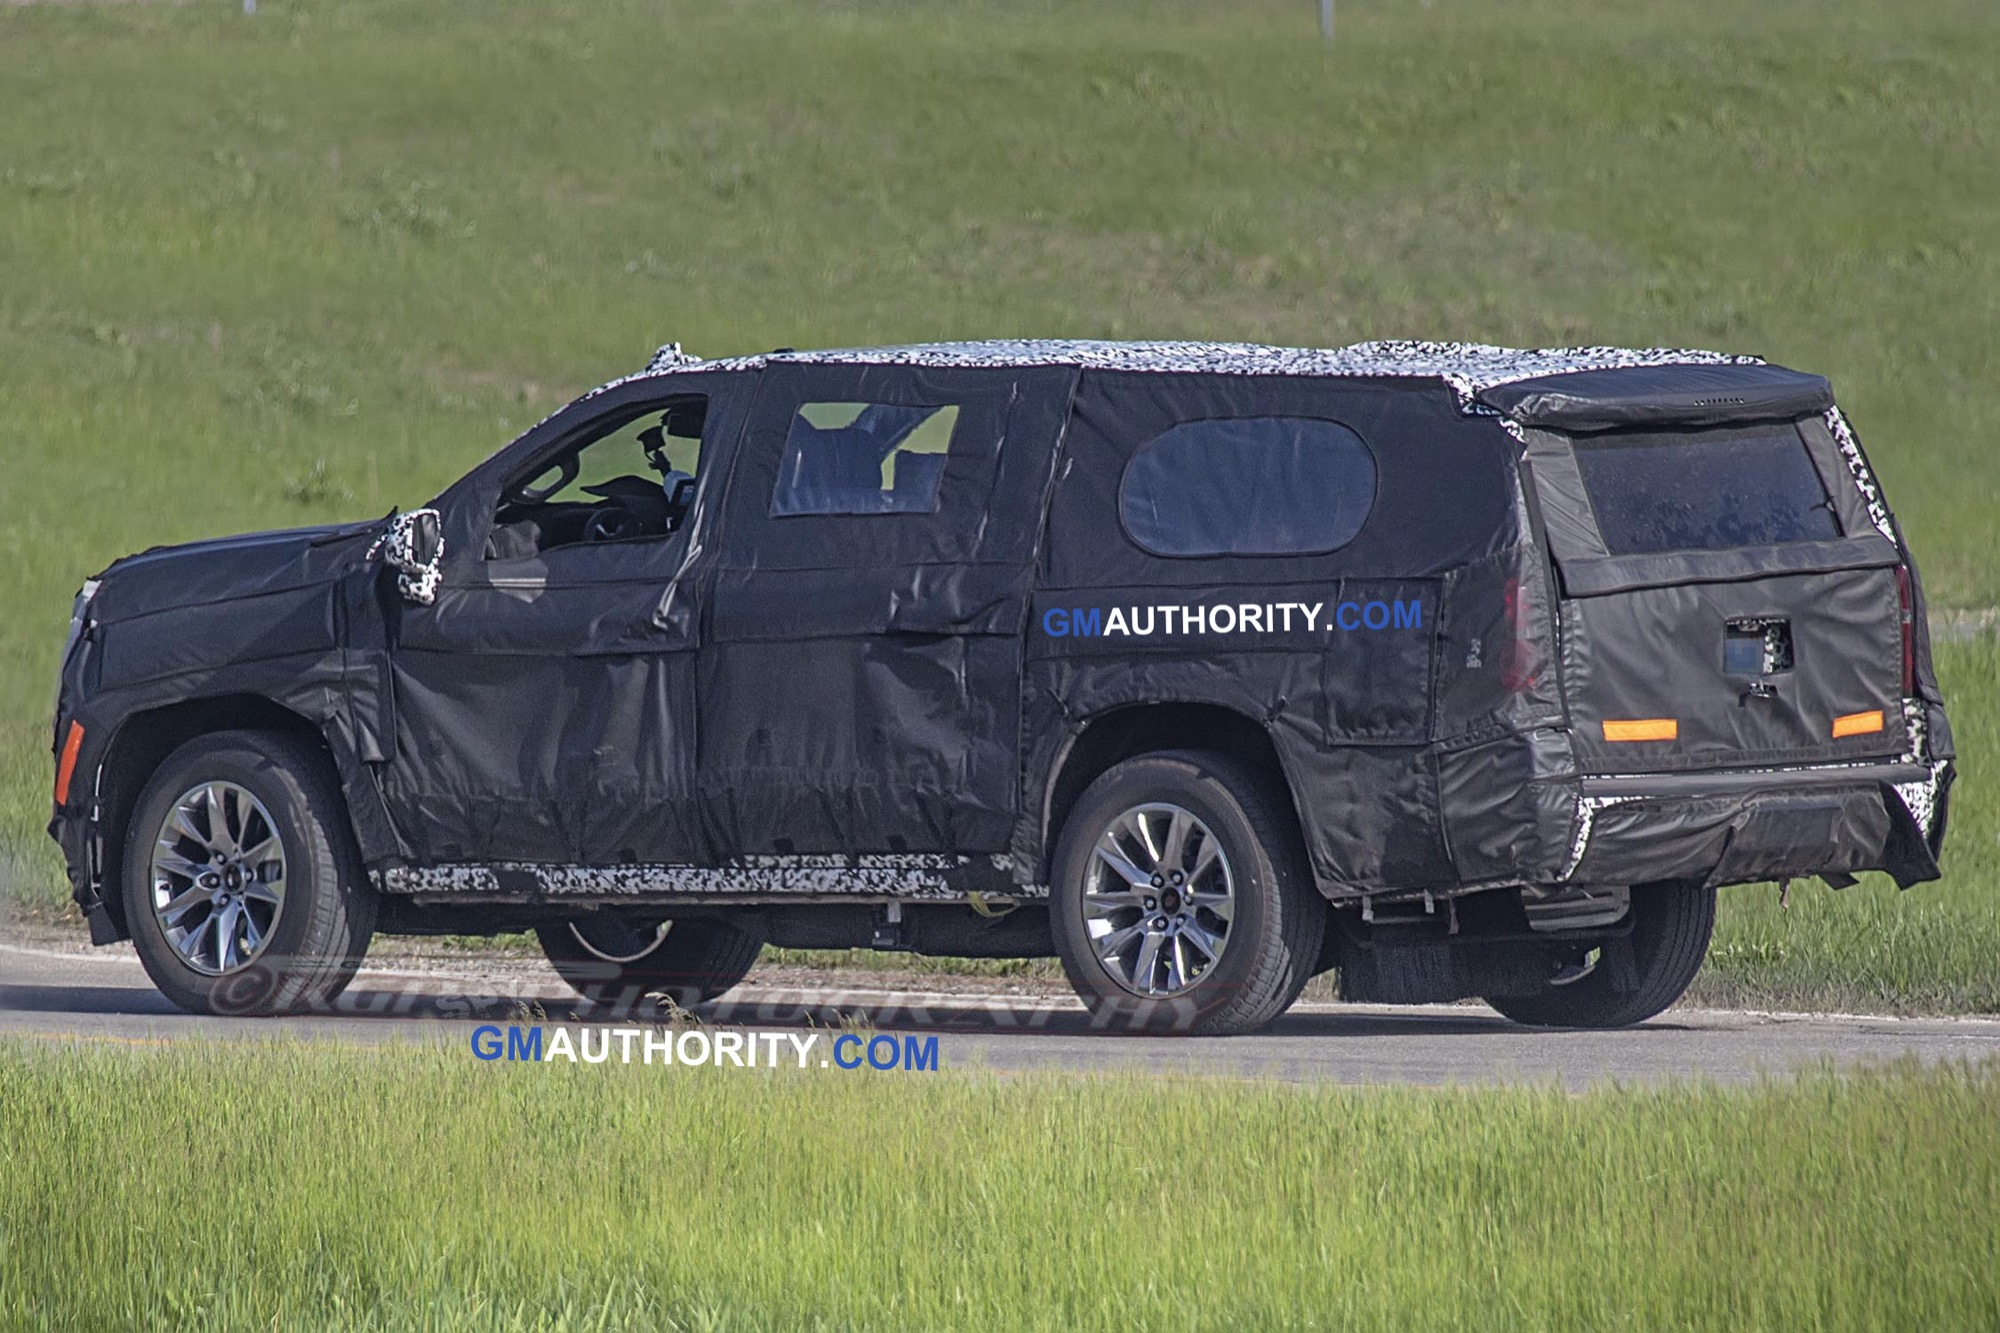 82 New When Will The 2020 Chevrolet Suburban Be Released Price and Review with When Will The 2020 Chevrolet Suburban Be Released